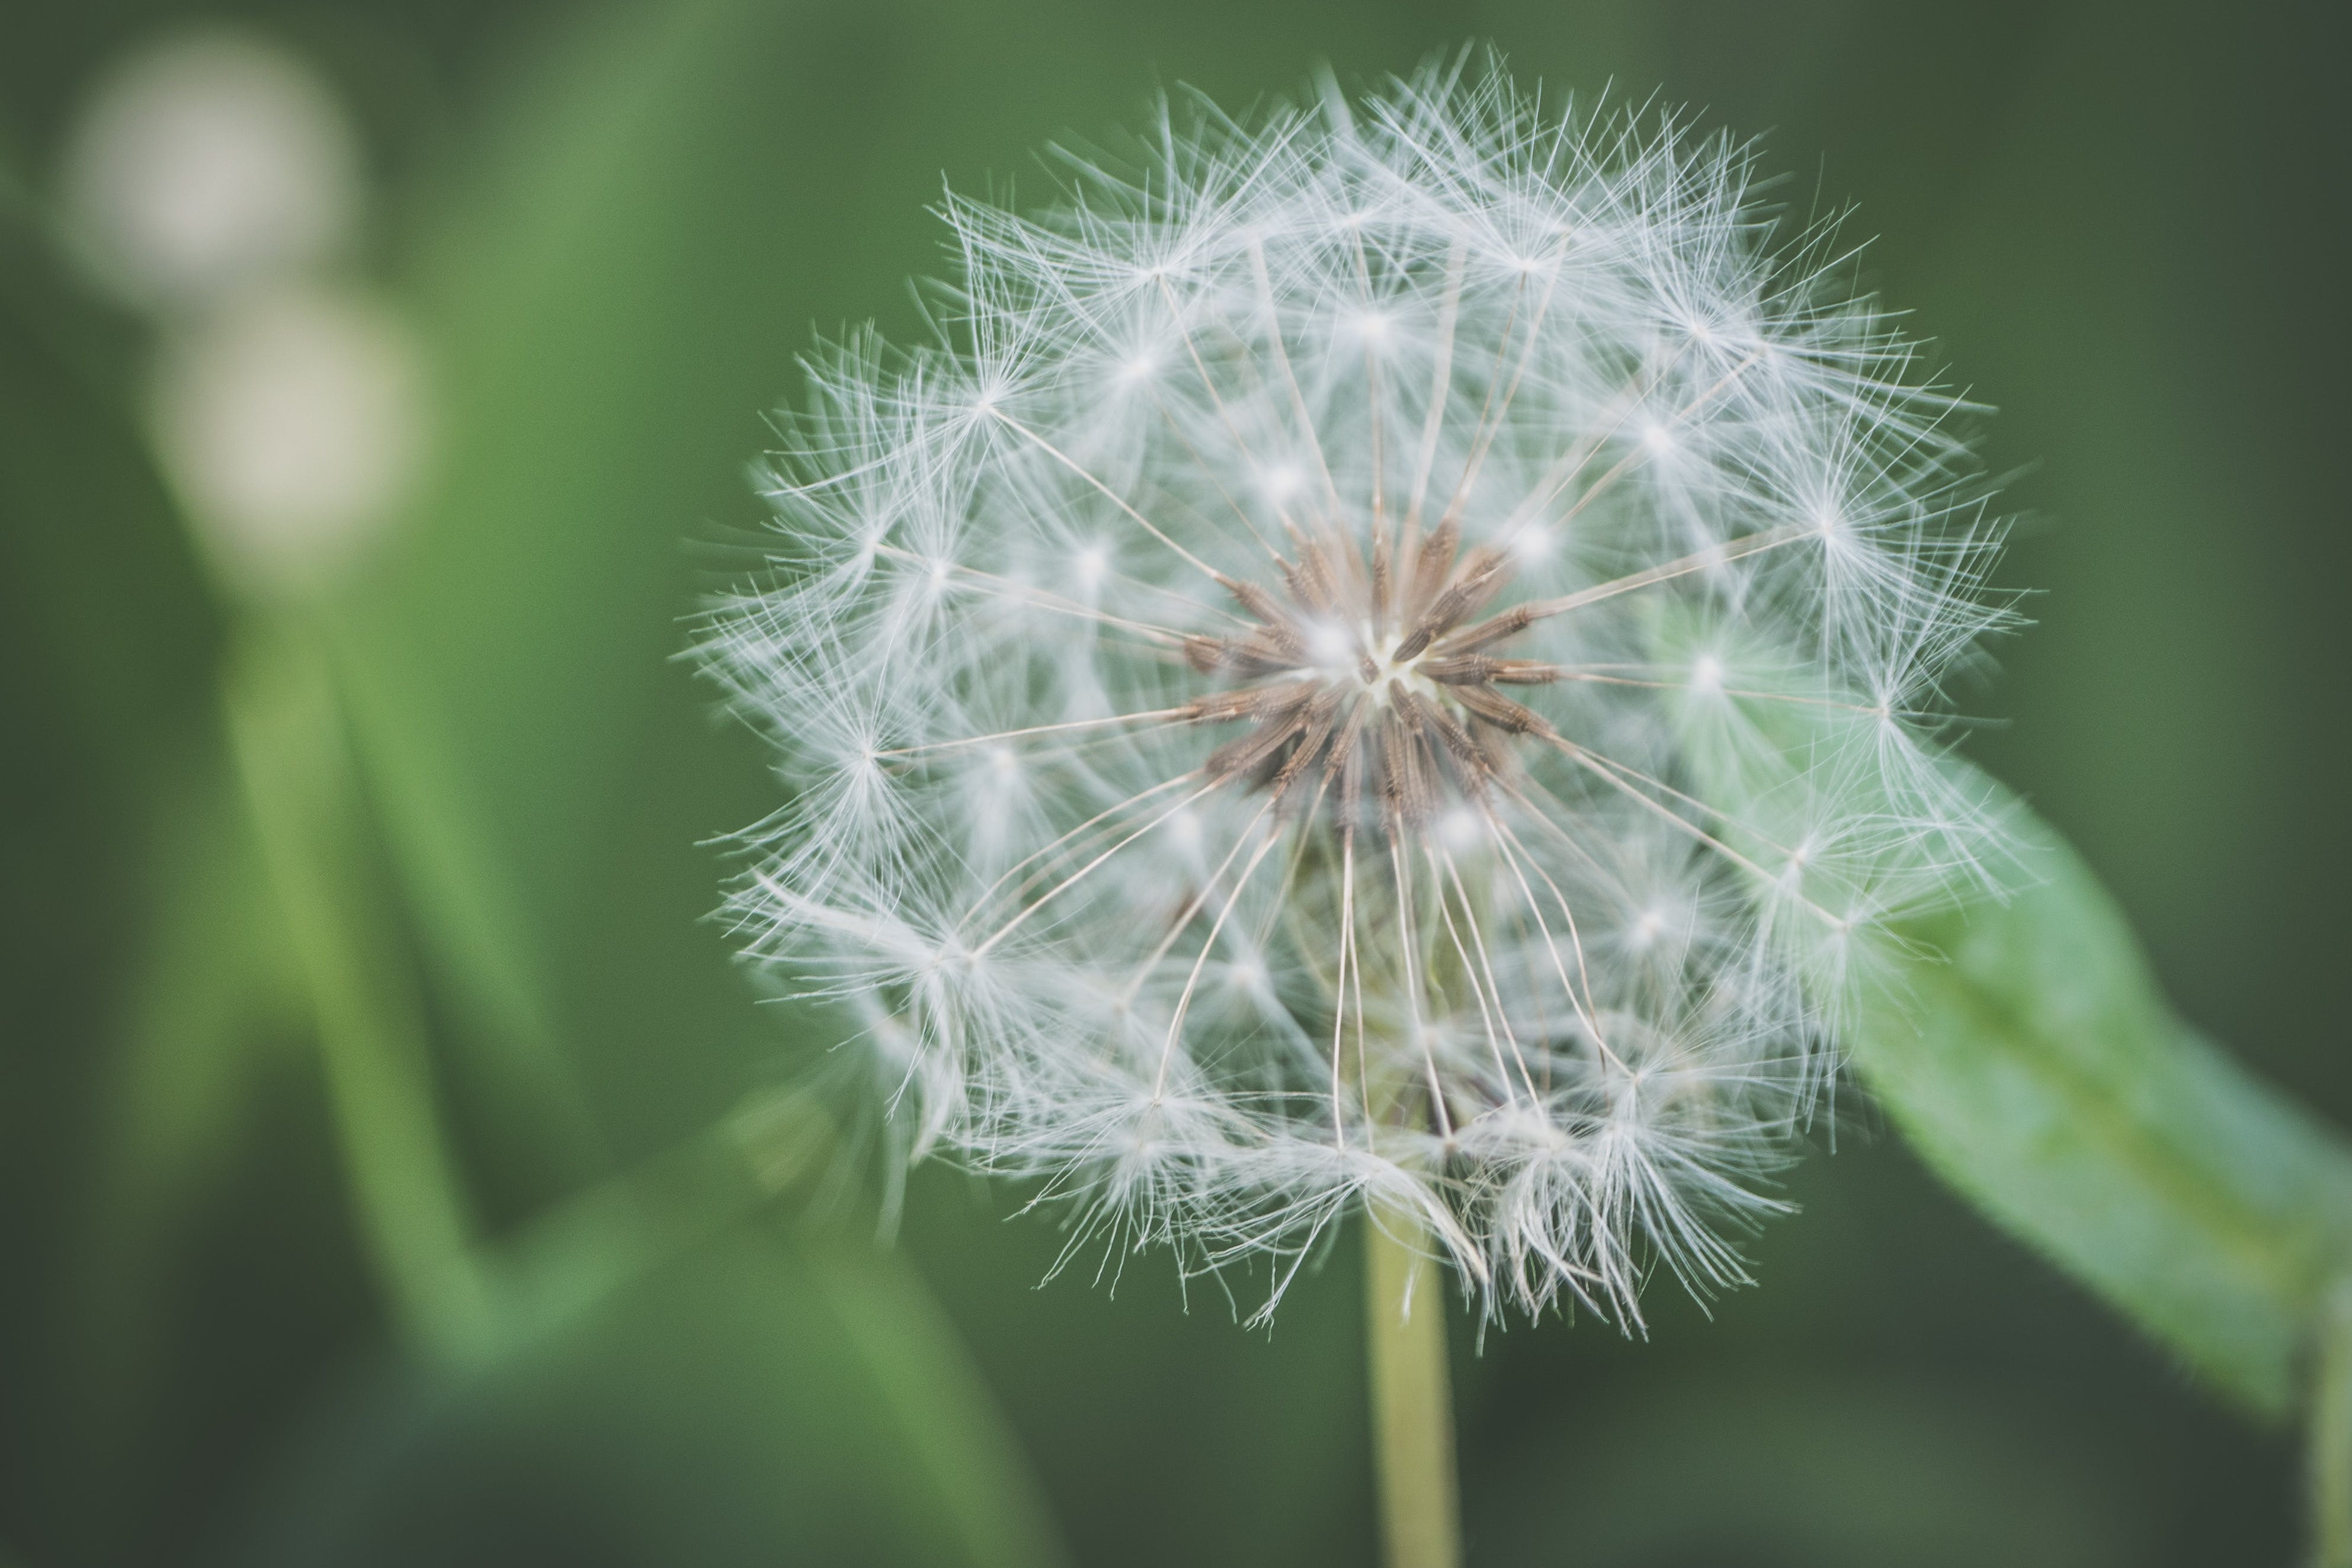 Shallow Focus Photography of White Dandelion Flower